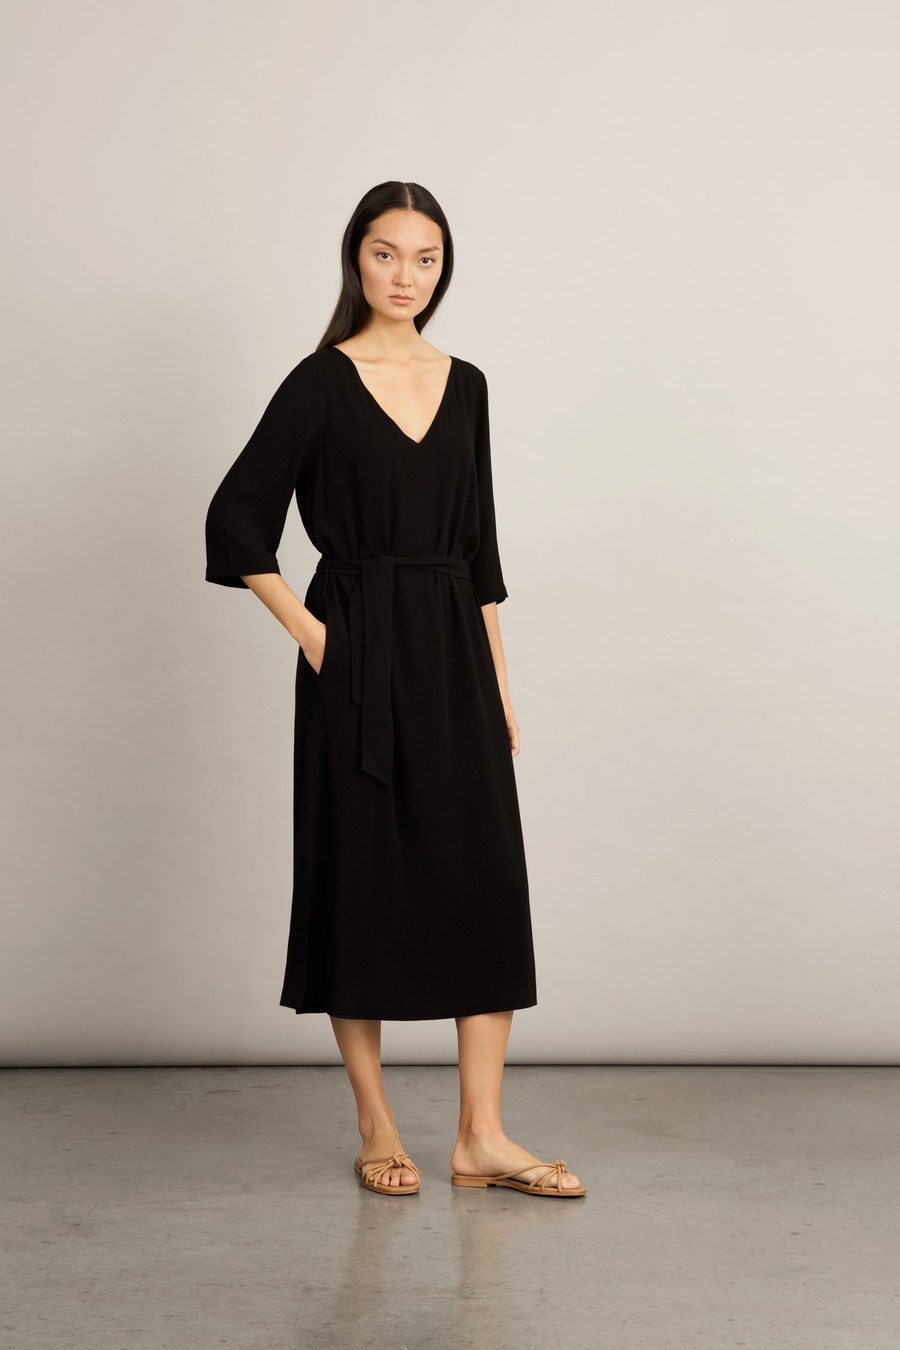 senna-dress-black-dress-stylein-445027_900x.jpg